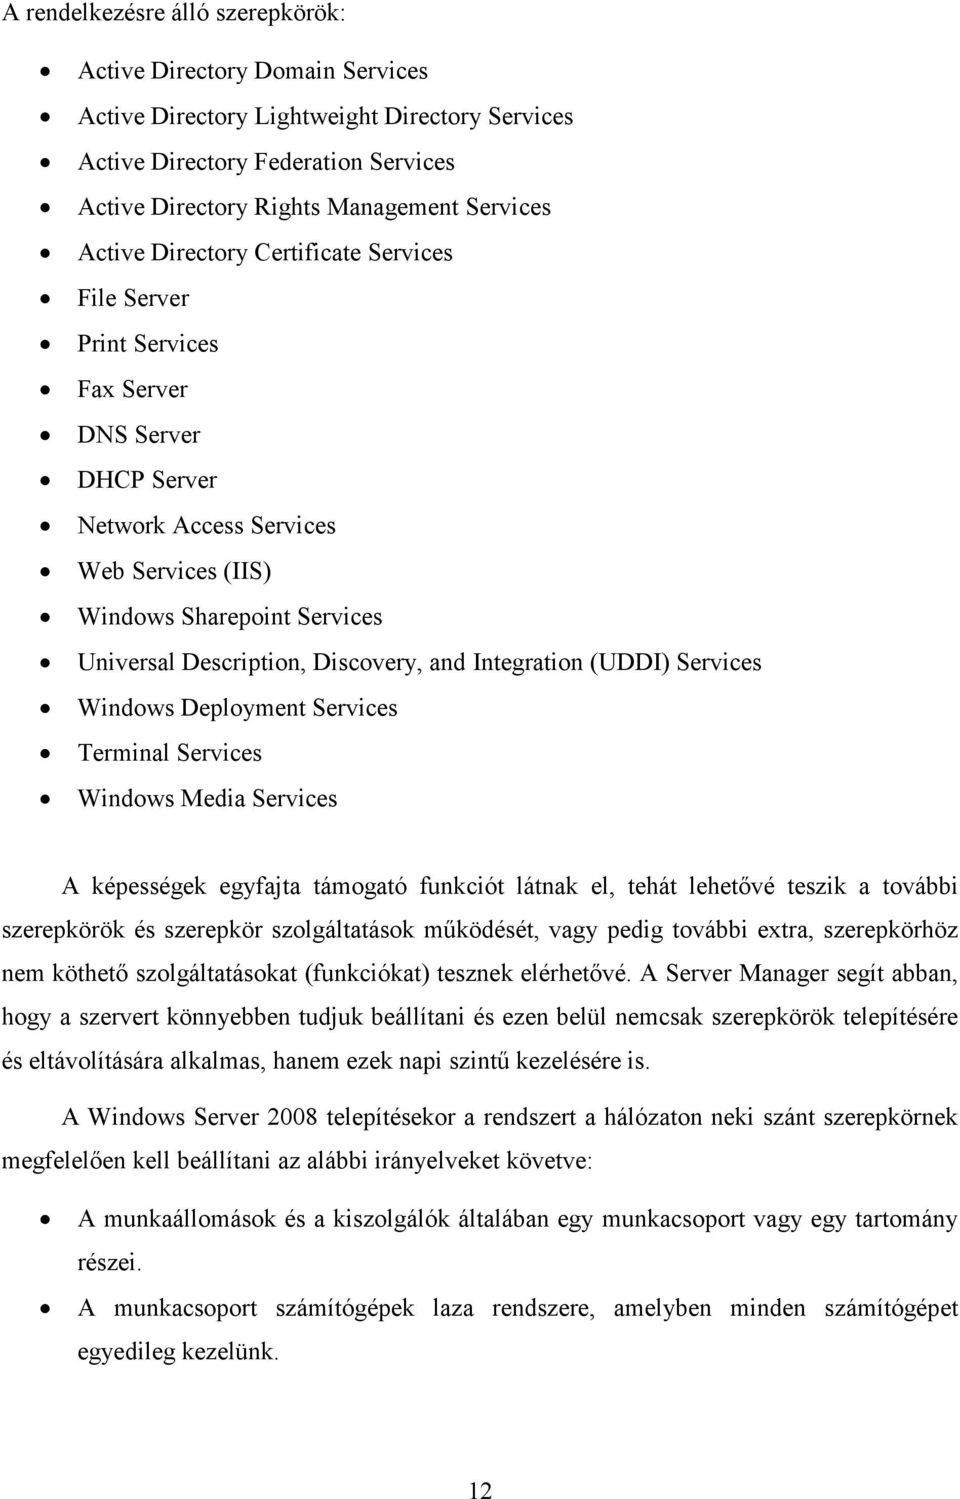 Discovery, and Integration (UDDI) Services Windows Deployment Services Terminal Services Windows Media Services A képességek egyfajta támogató funkciót látnak el, tehát lehetıvé teszik a további